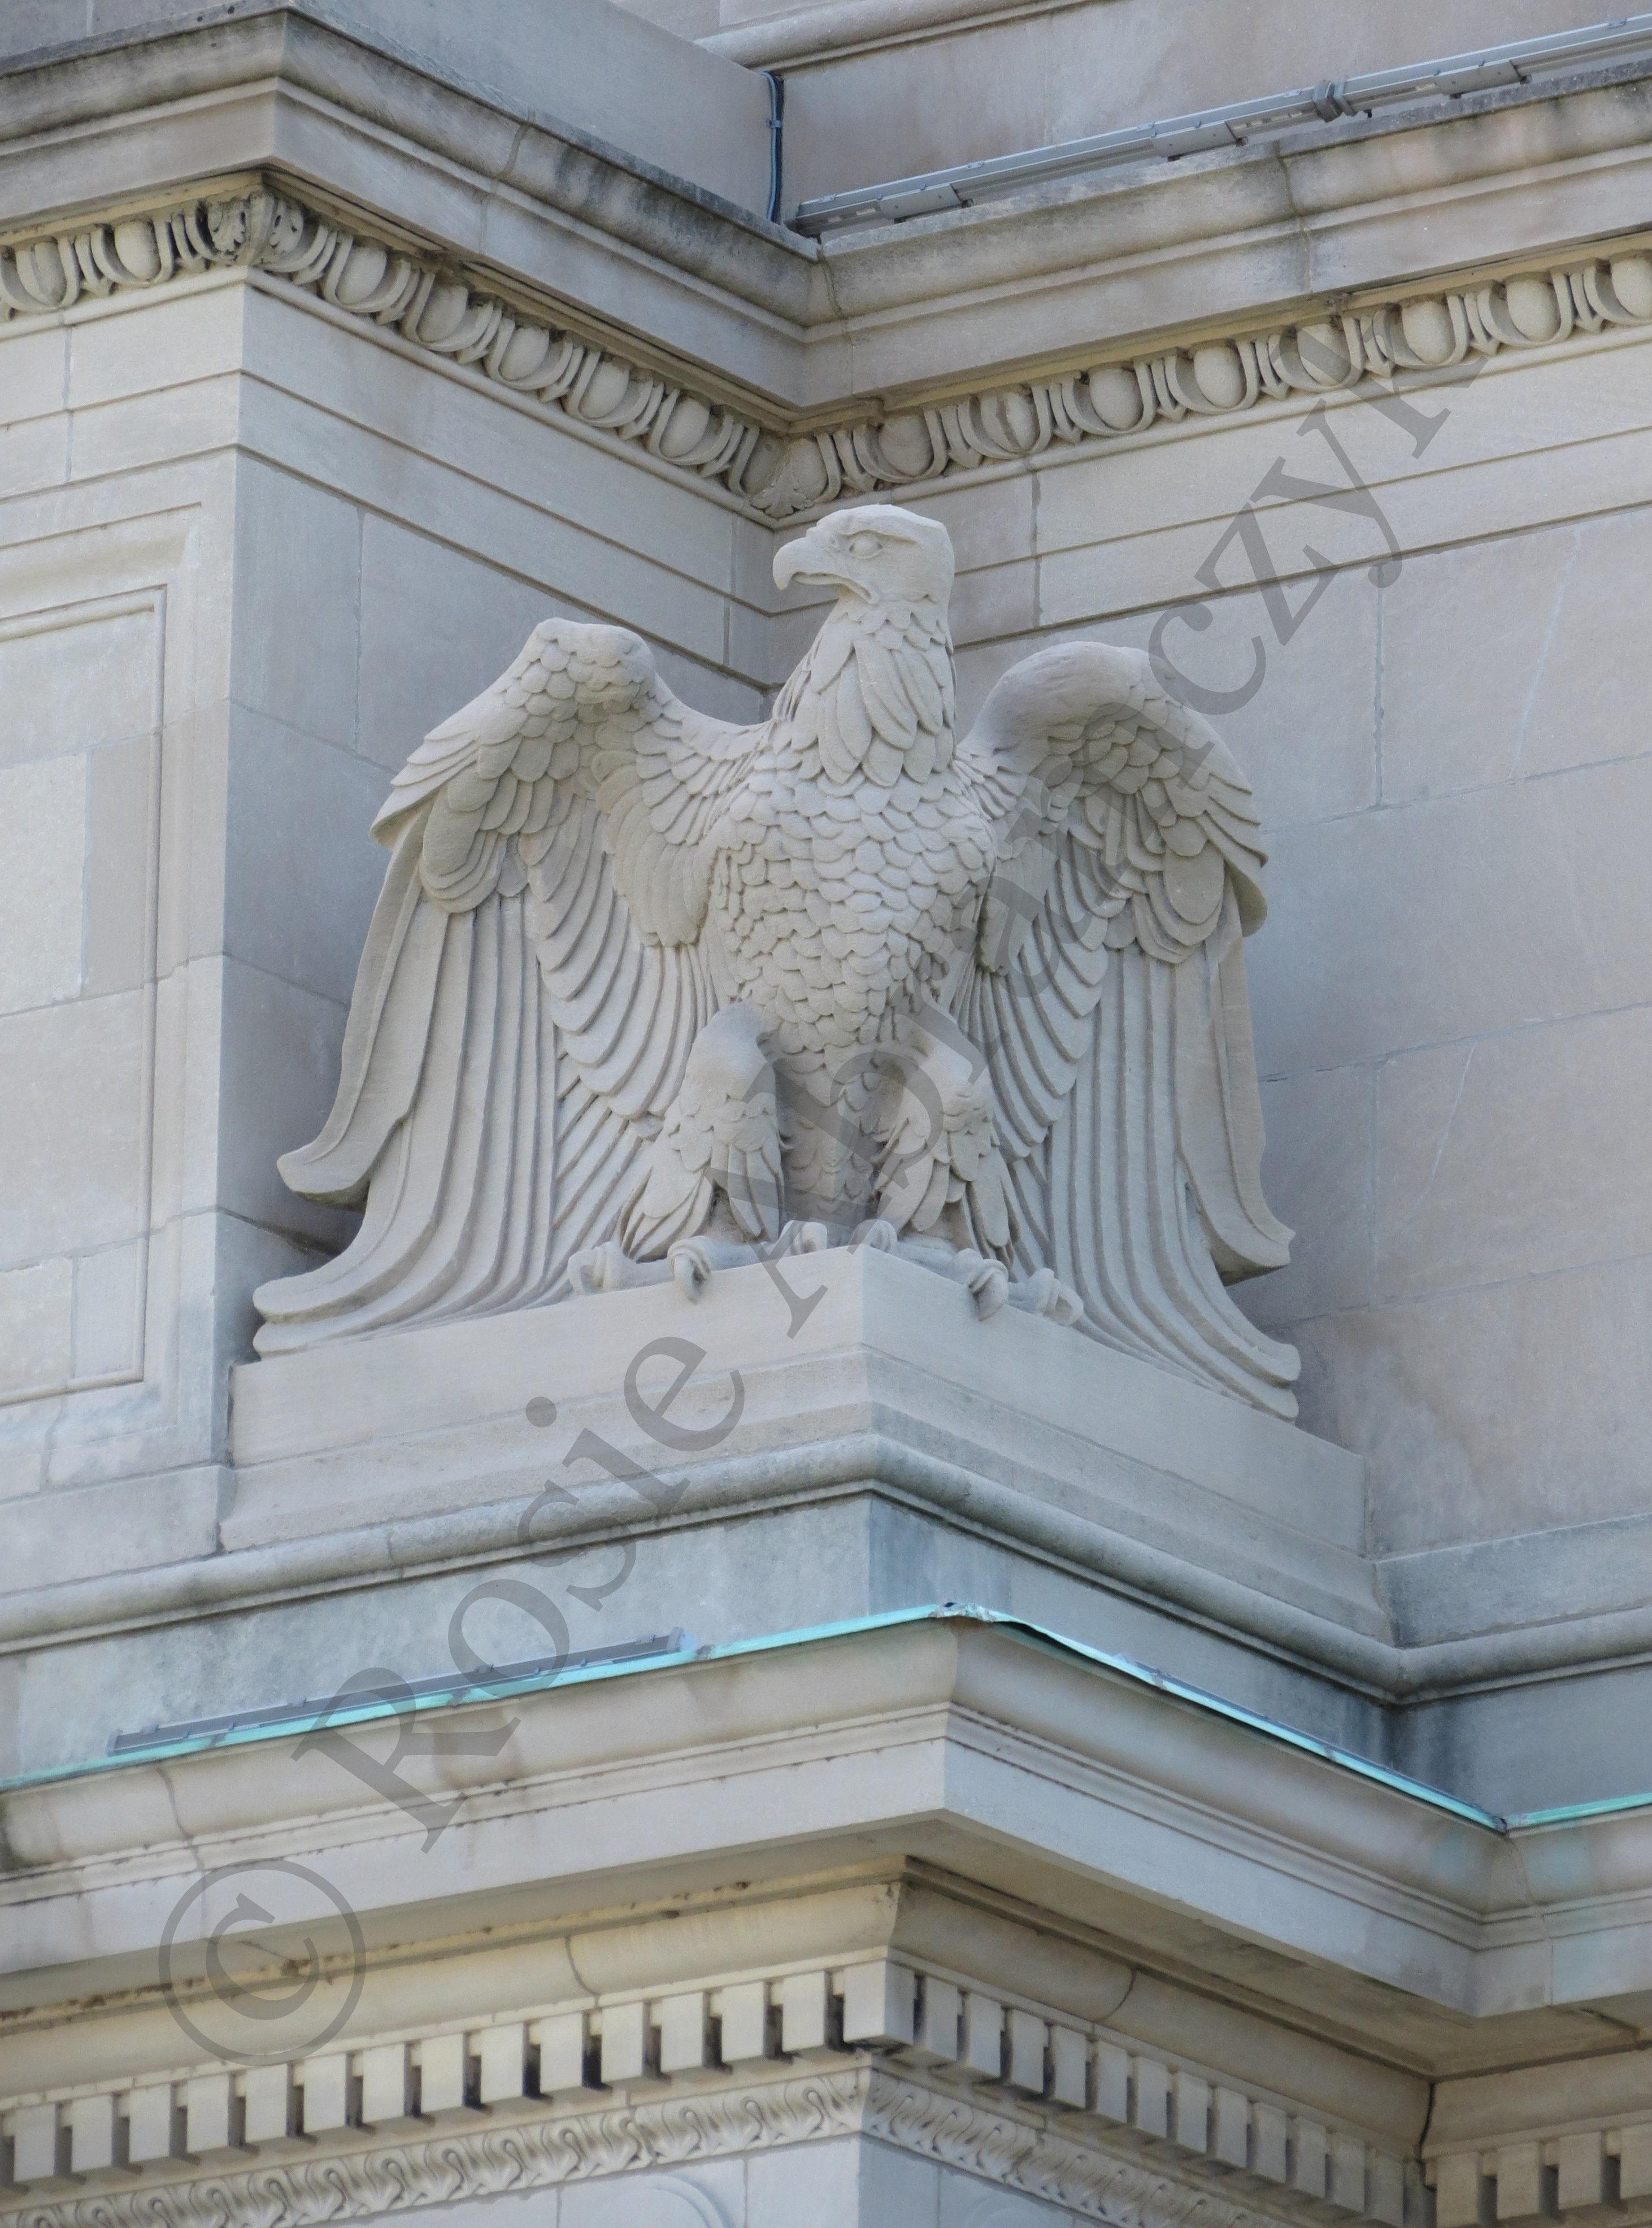 Eagle at The Missouri History Museum, by Rosie Abramczyk, Photo, 2013